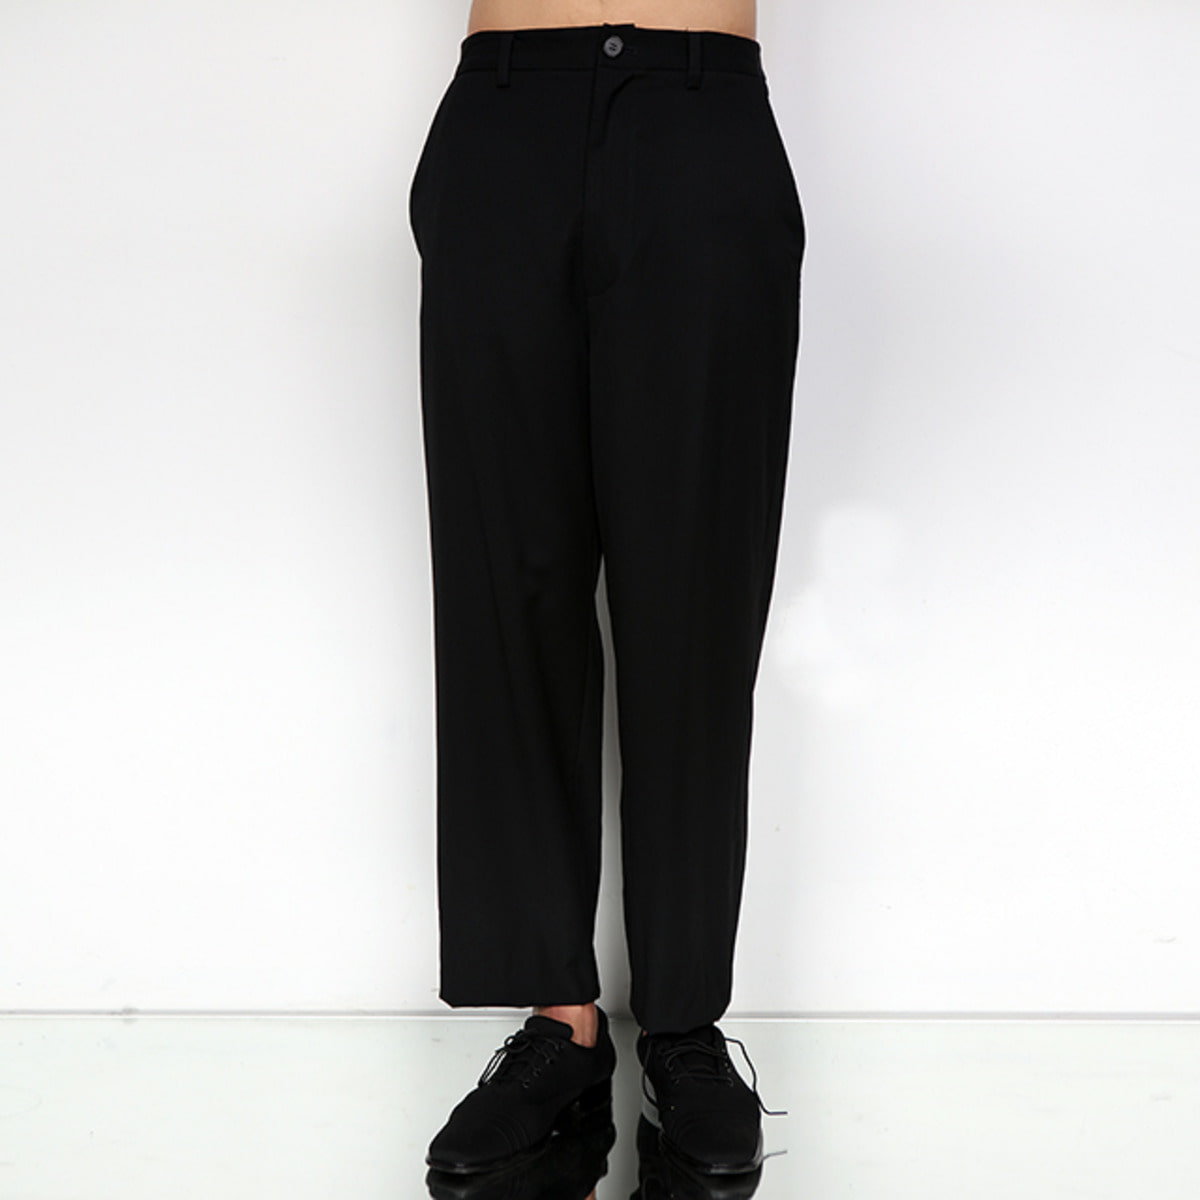 BLACK L WOOL TROUSER